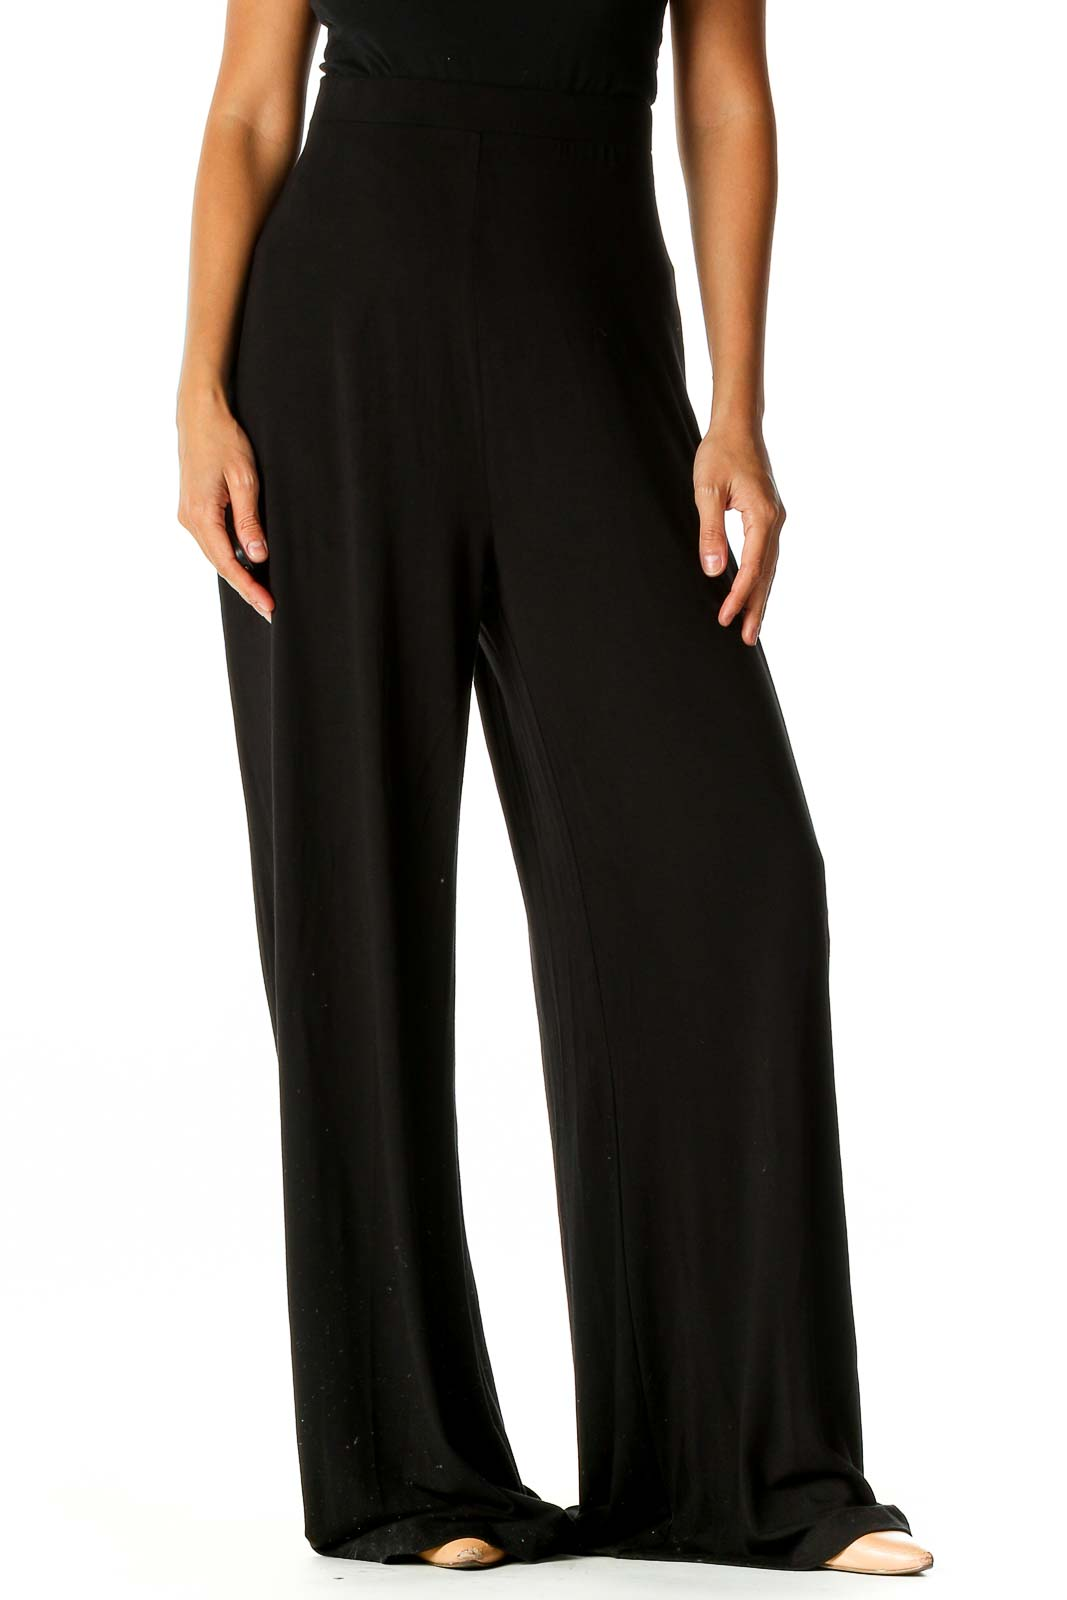 Black Solid Brunch Palazzo Pants Front